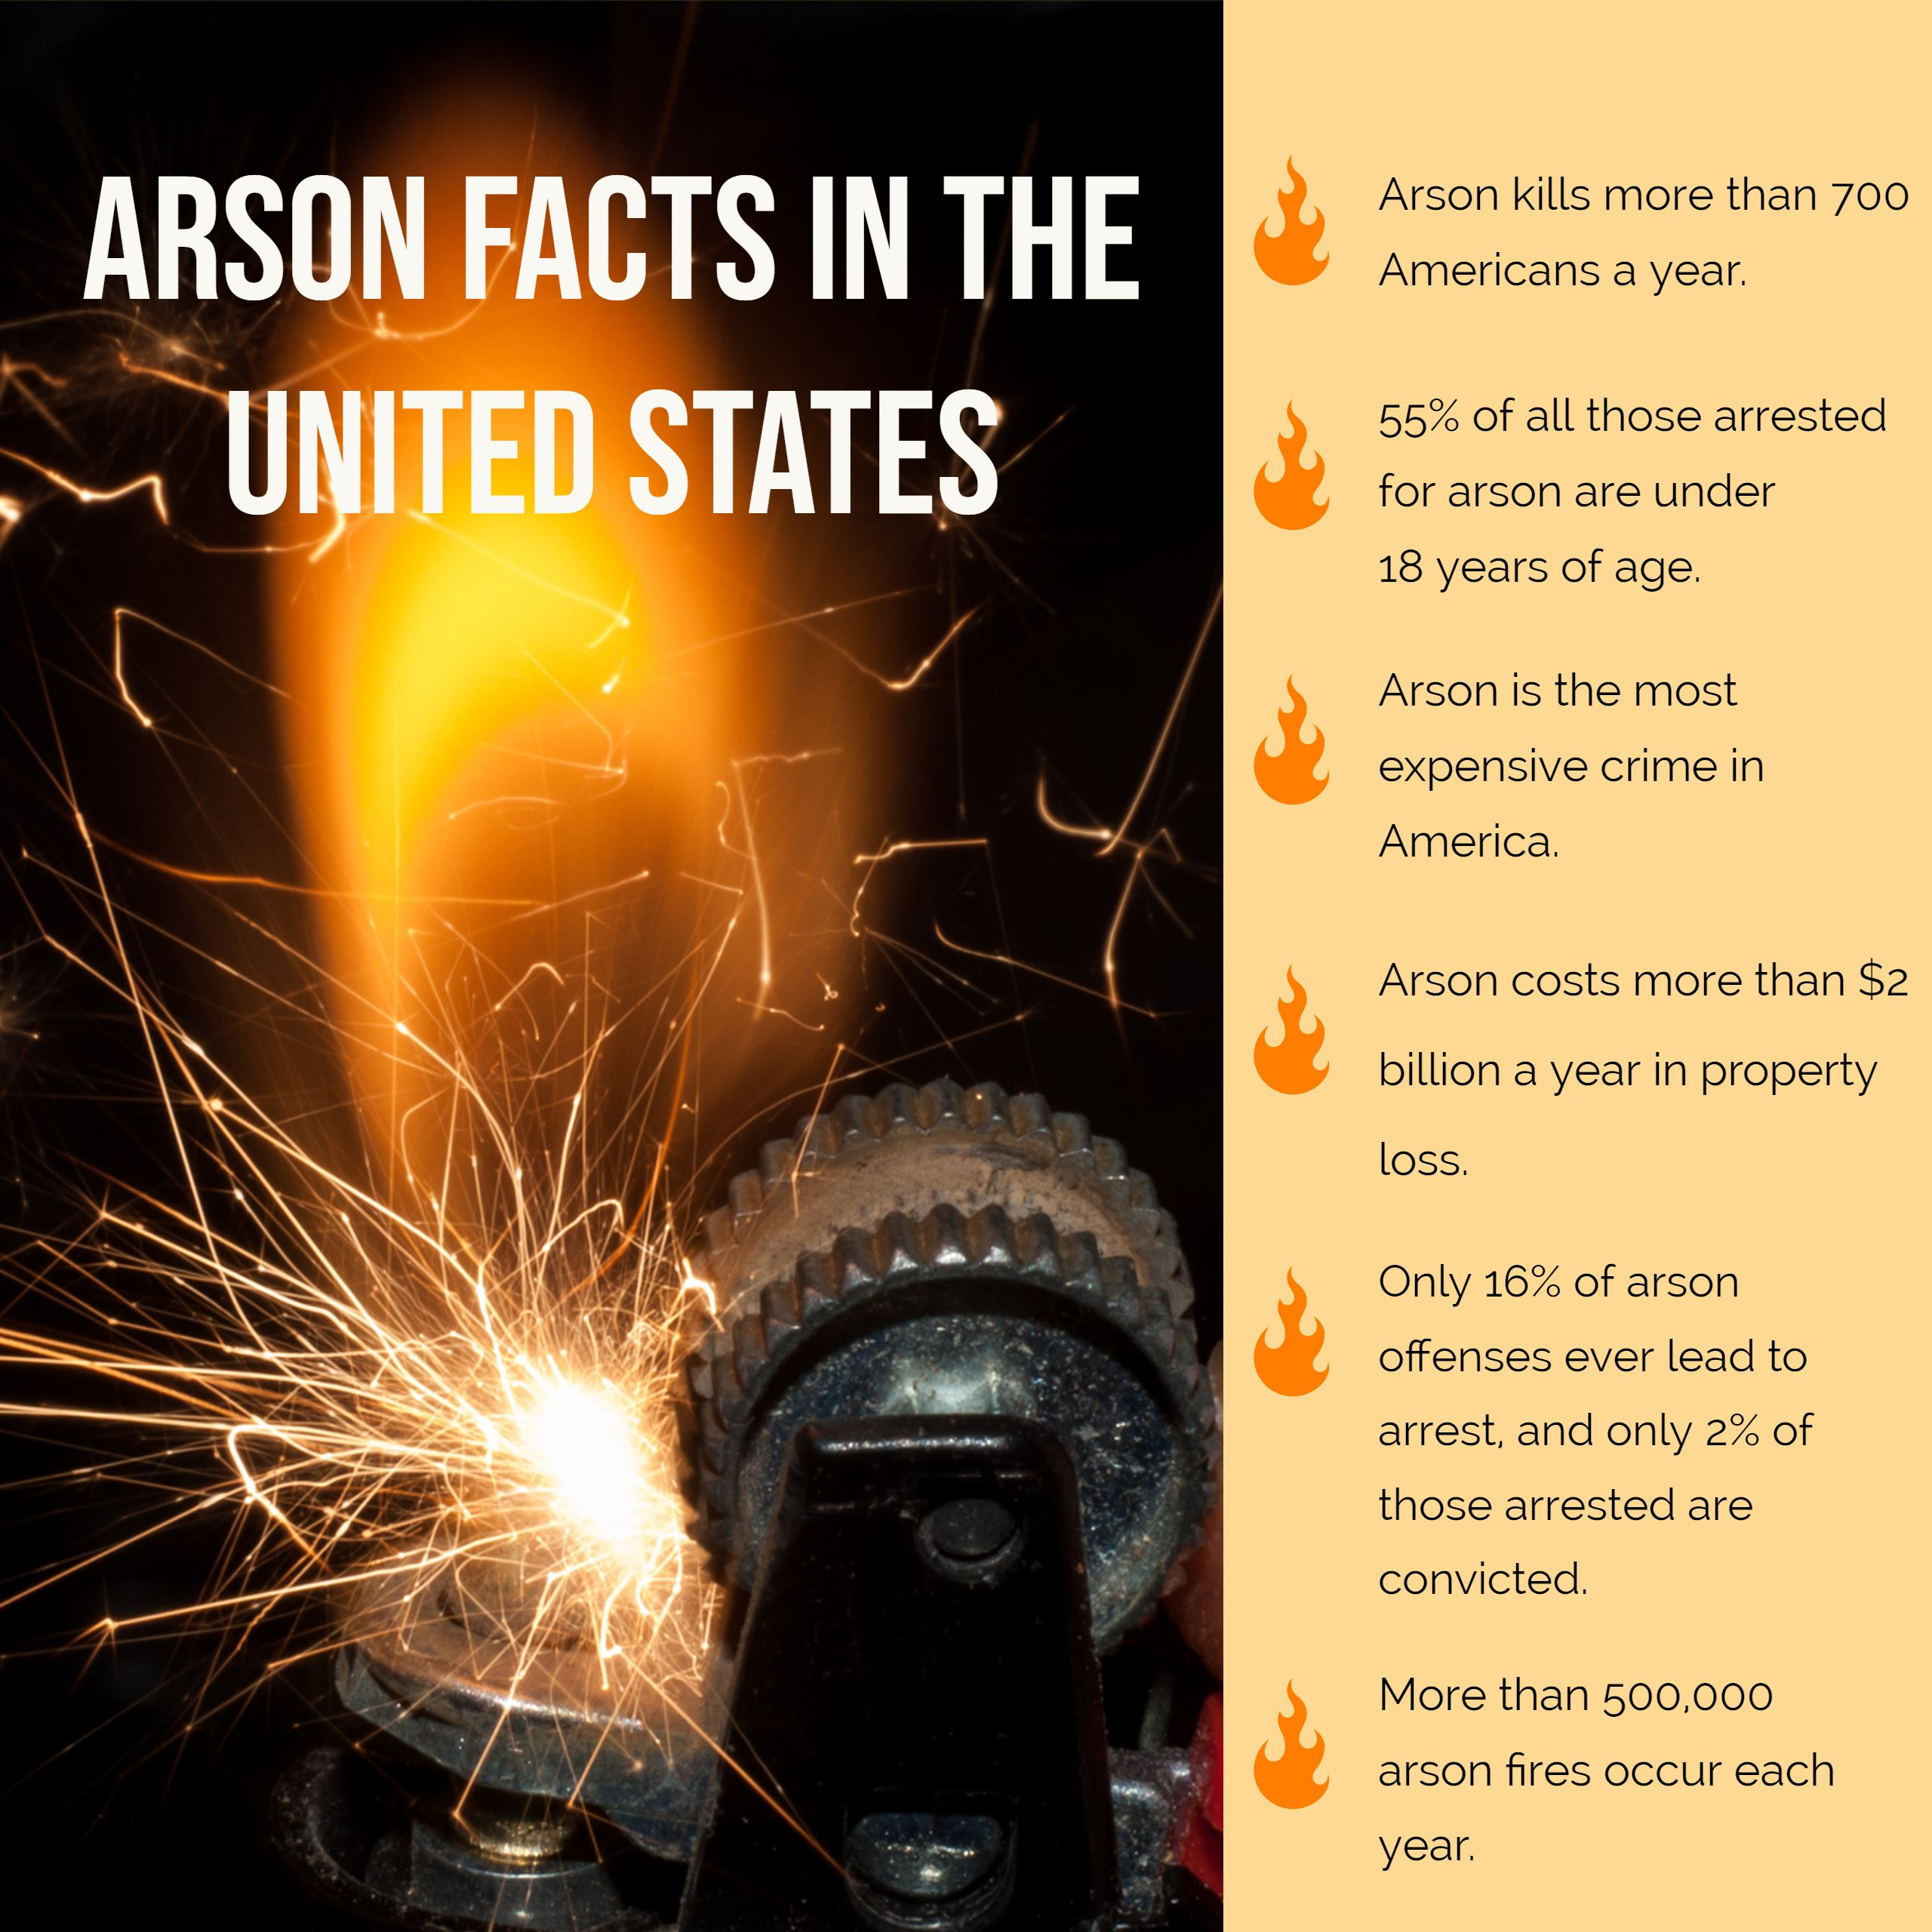 Arson Facts